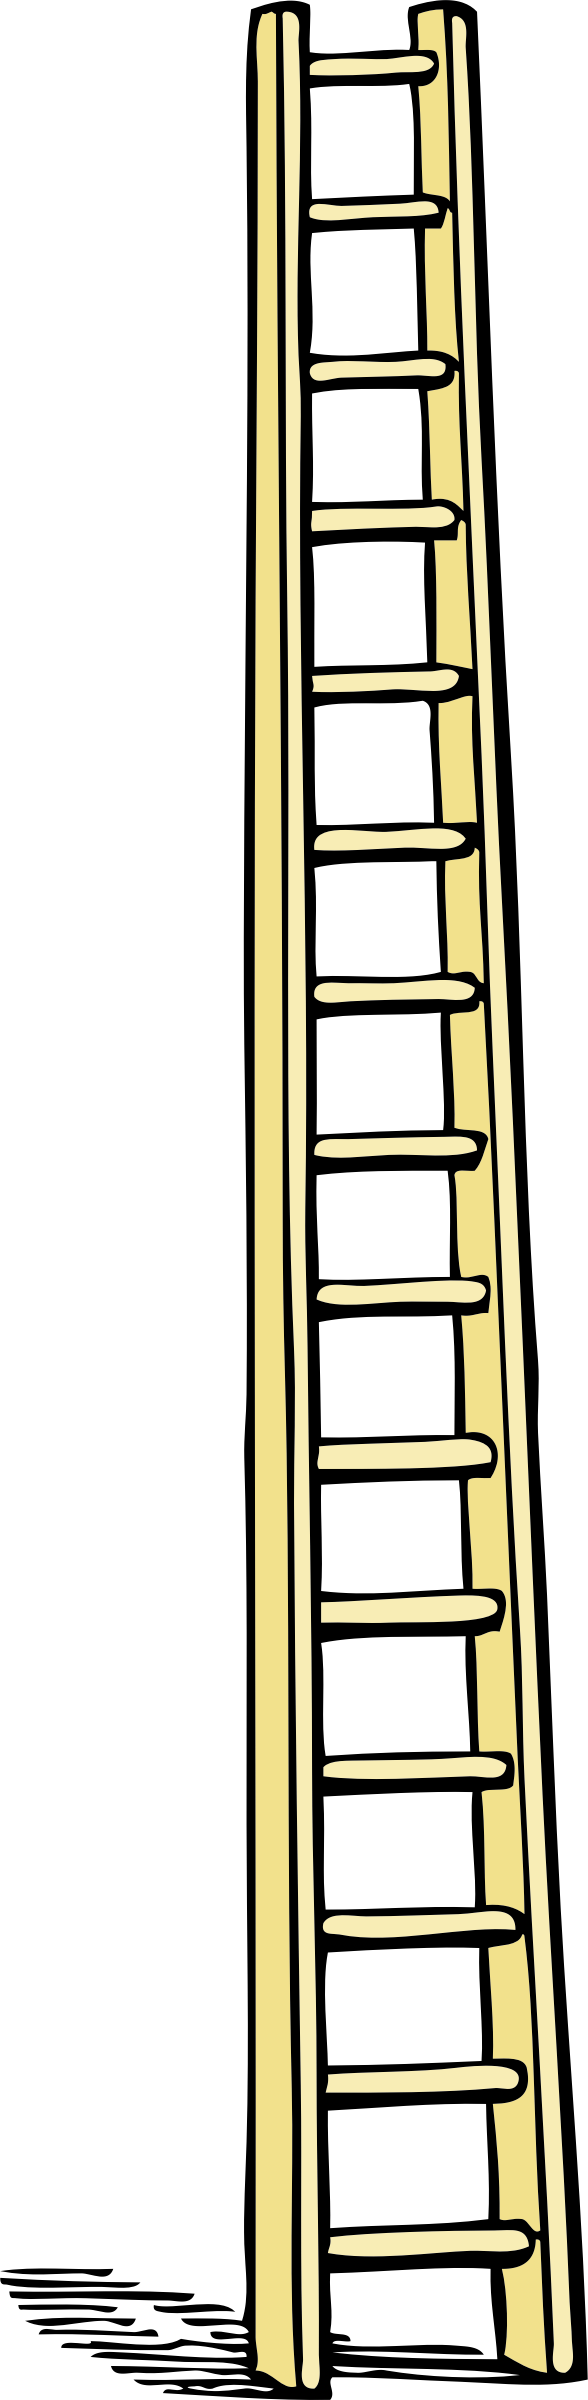 Ladder clipart purple. Tall icons png free